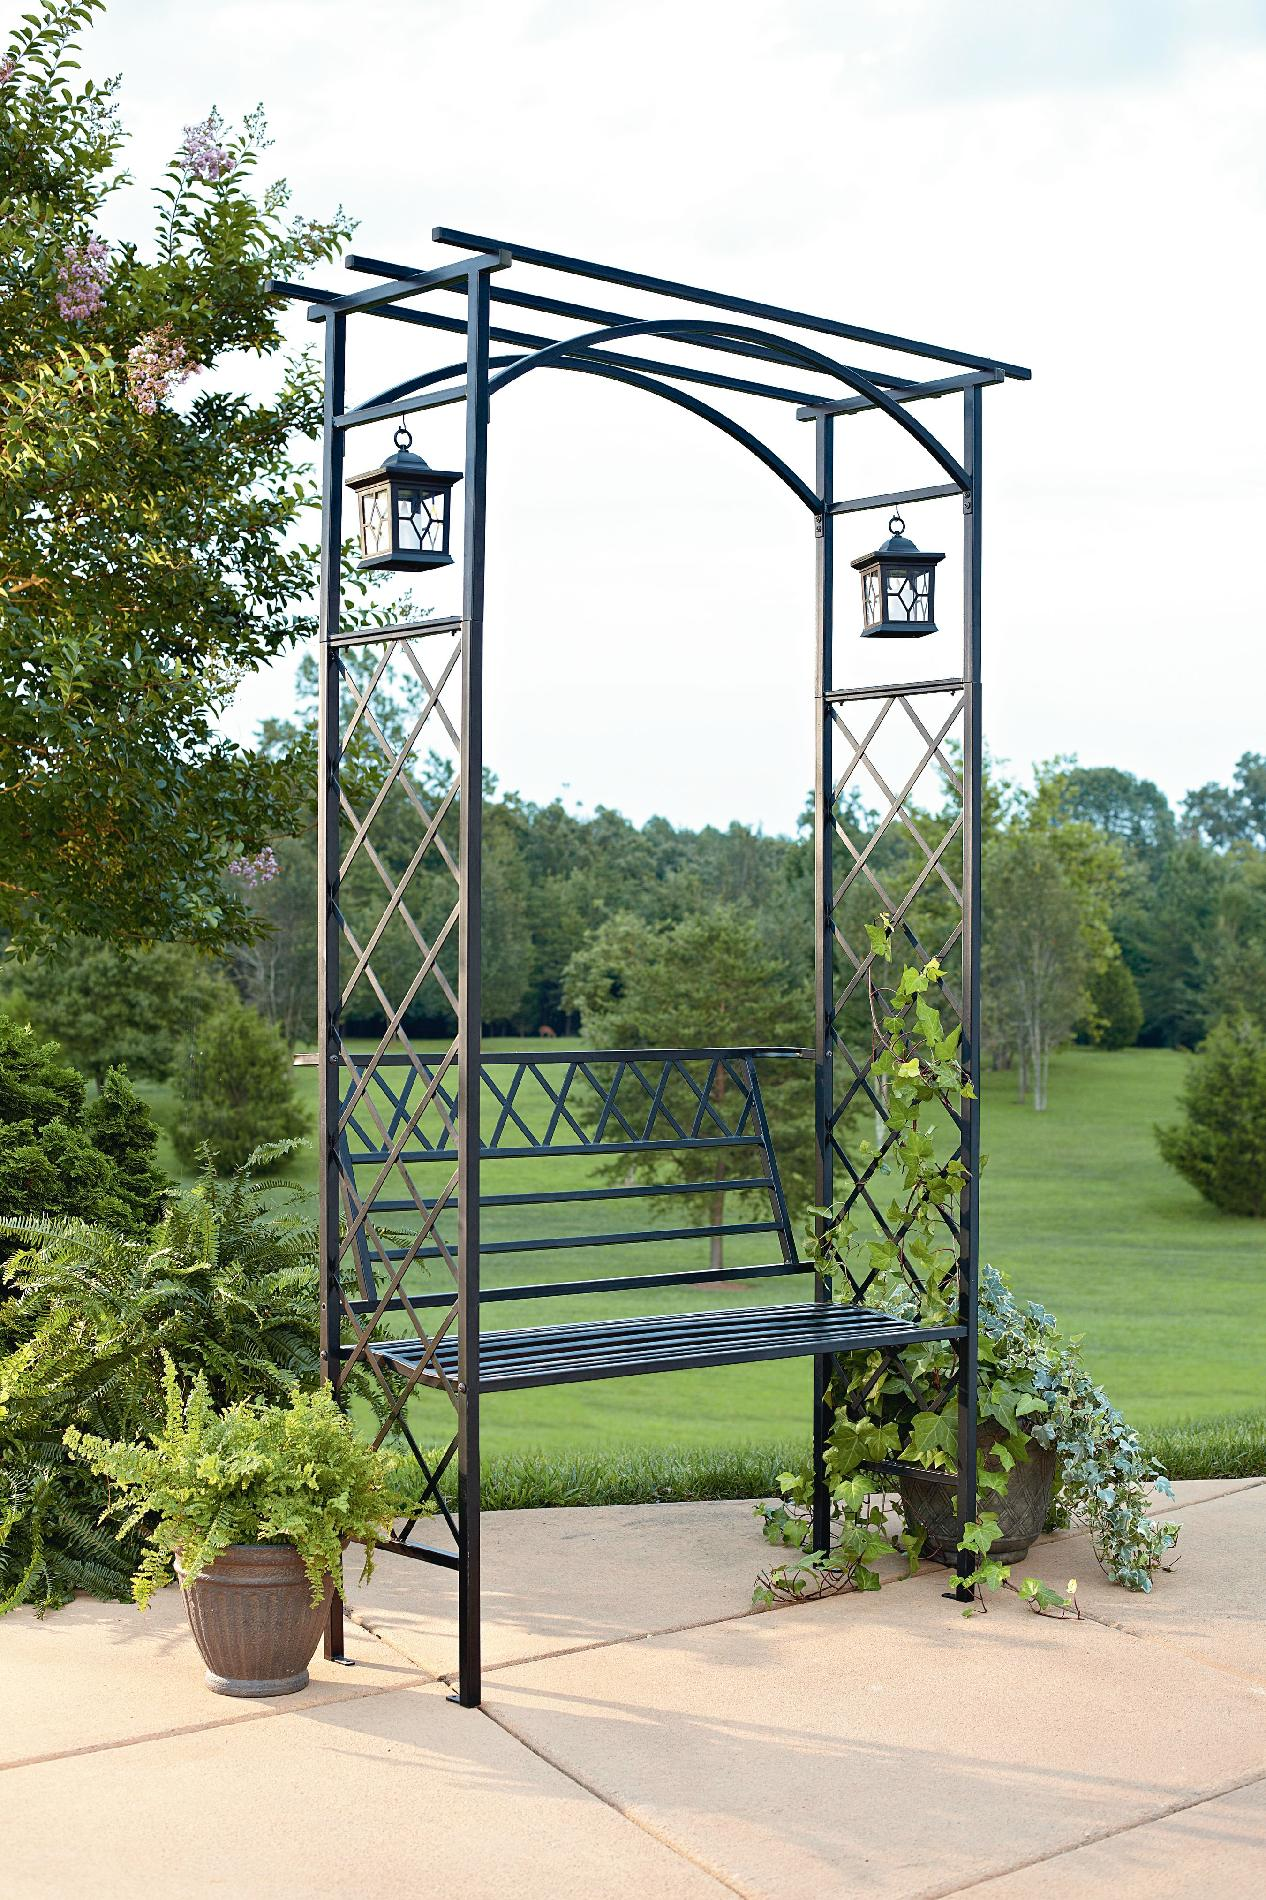 Garden Oasis Lattice Arbor With Bench And Two Lanterns